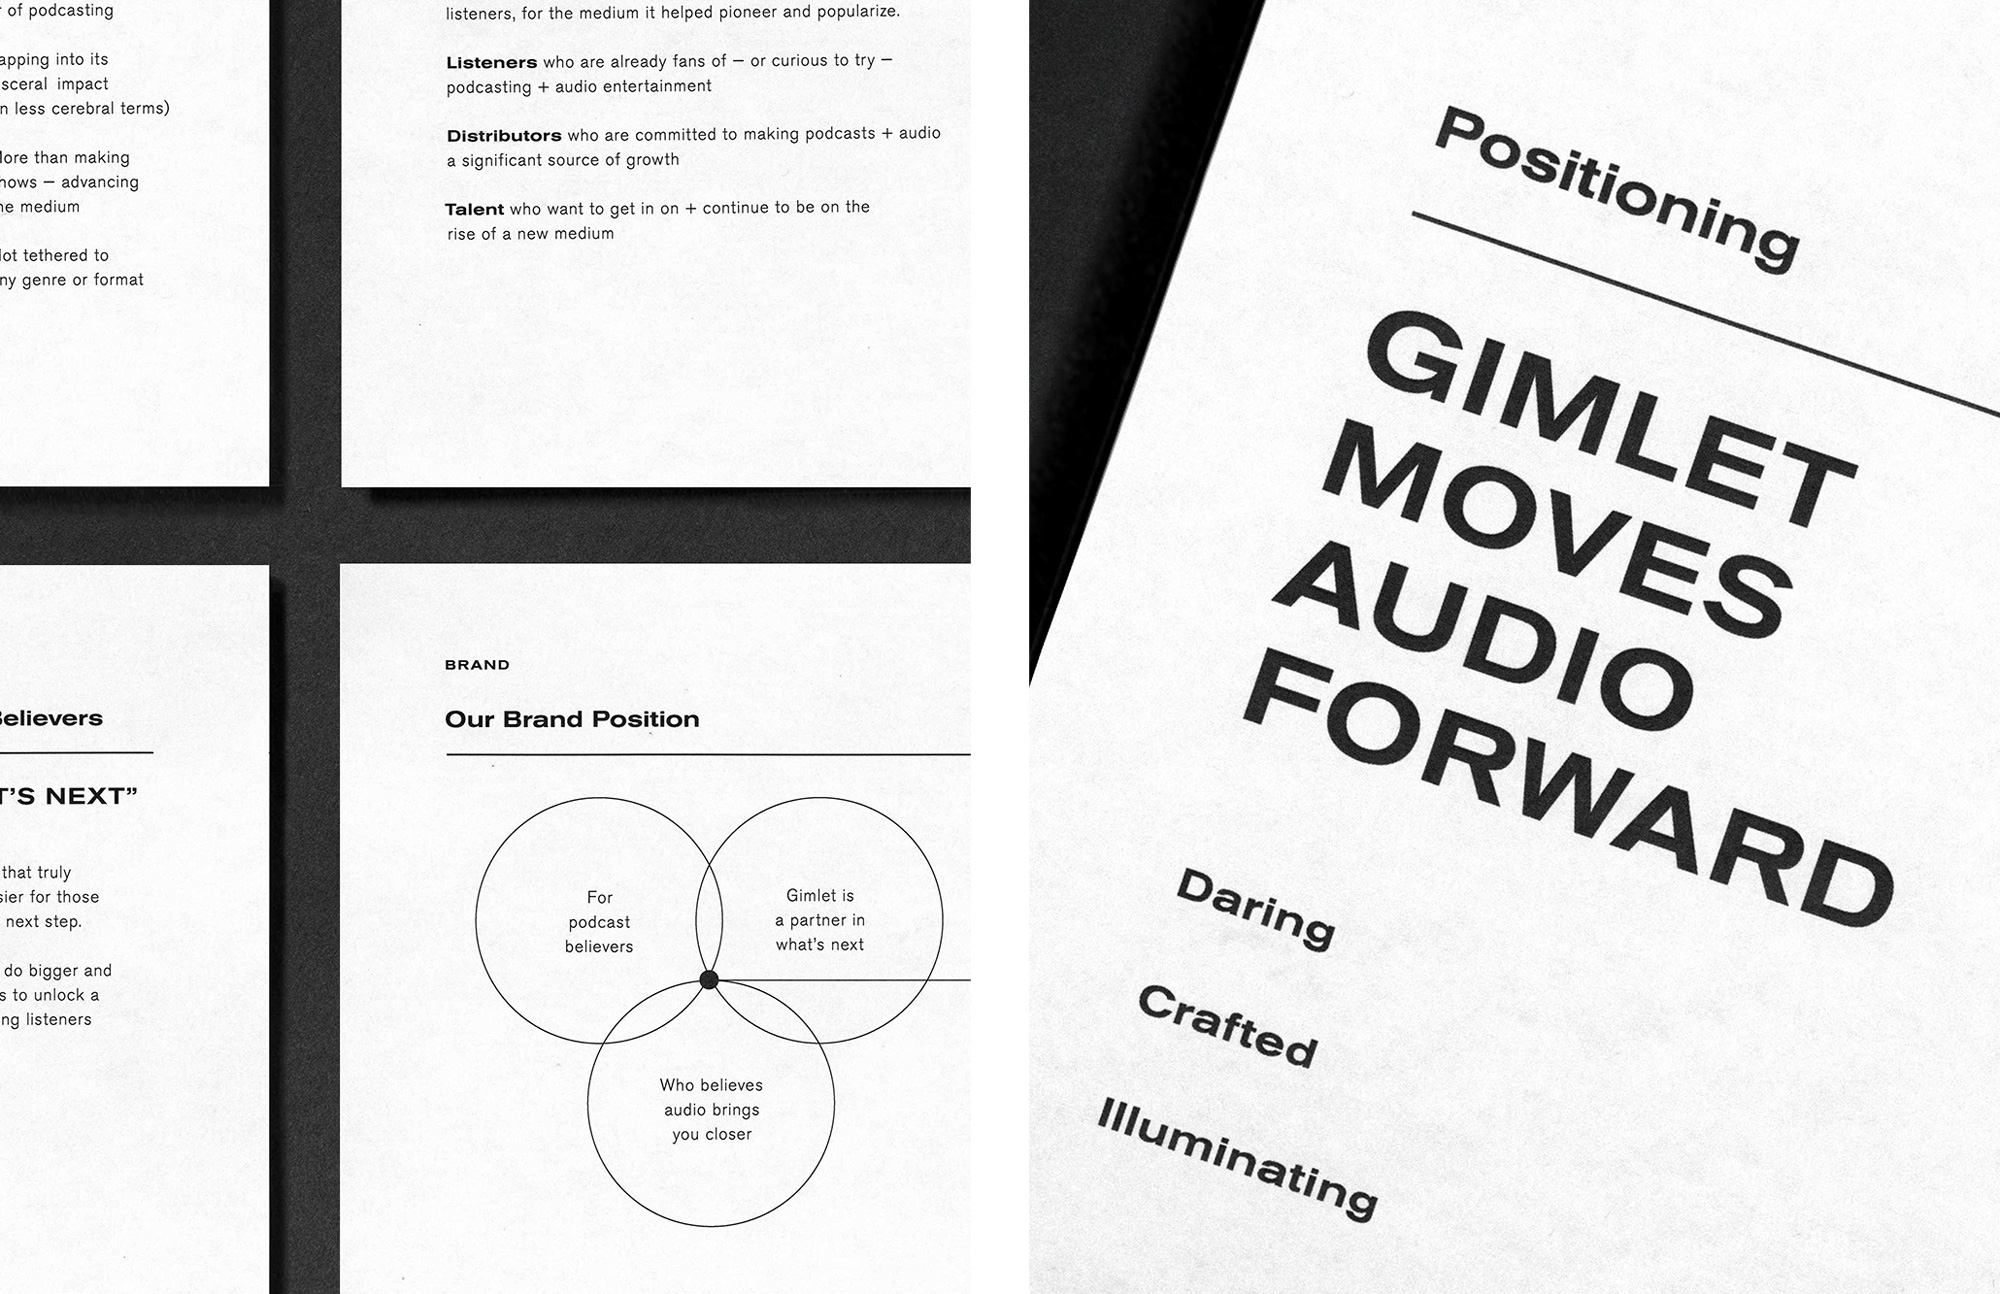 Follow-up: New Logo and Identity for Gimlet Media by Grand Army